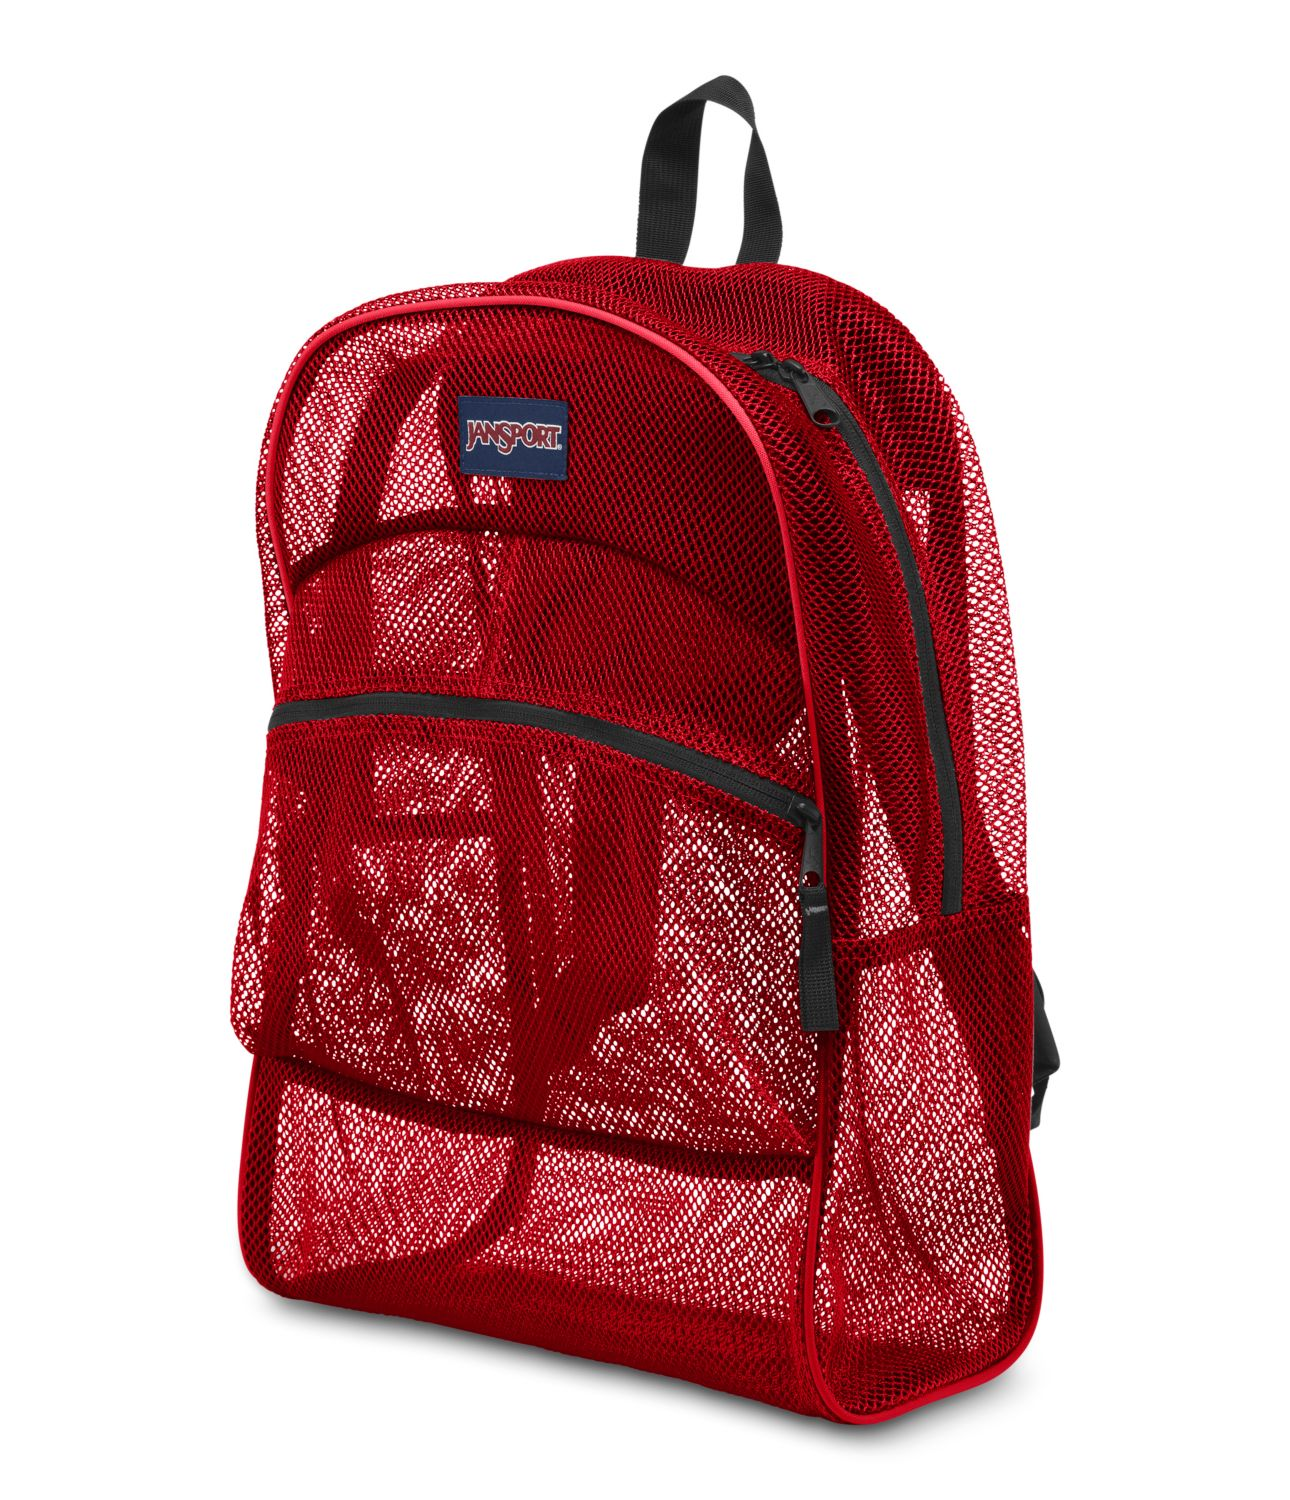 JanSport Mesh Pack School Backpack - High Risk Red